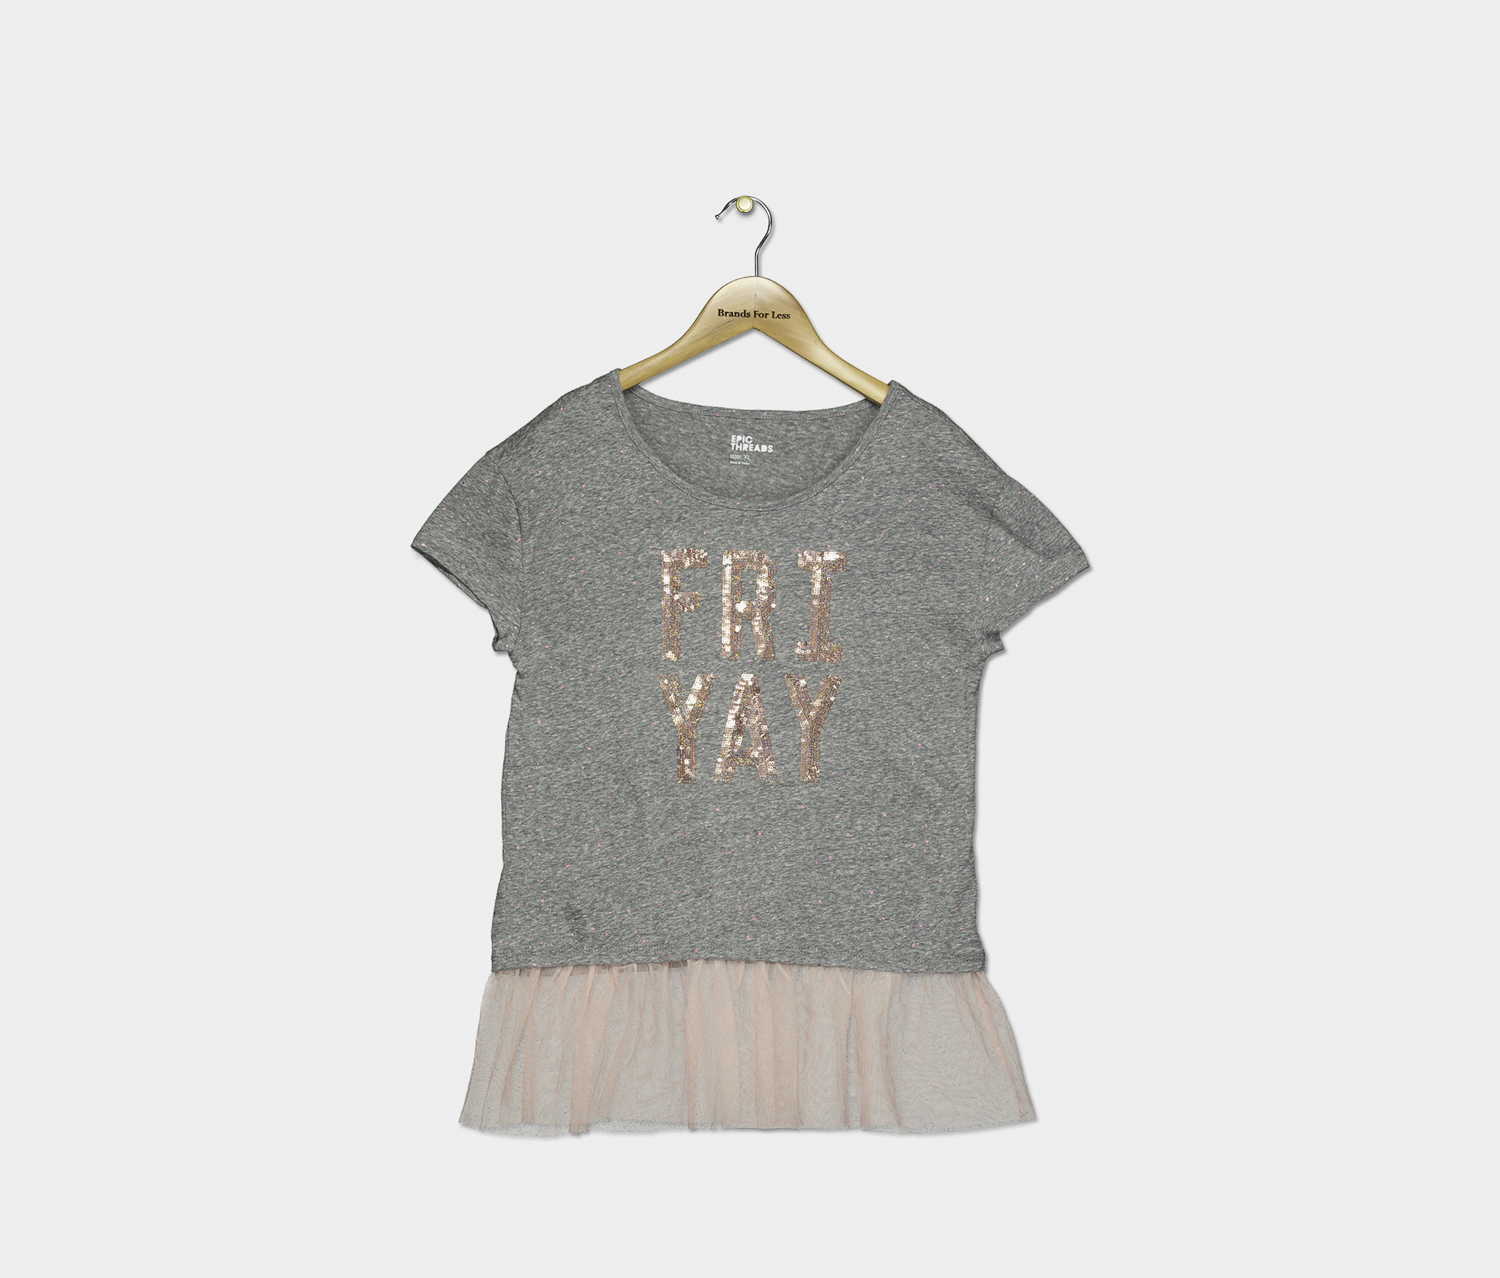 Big Girls Mesh-Inset Graphic Top, Grey